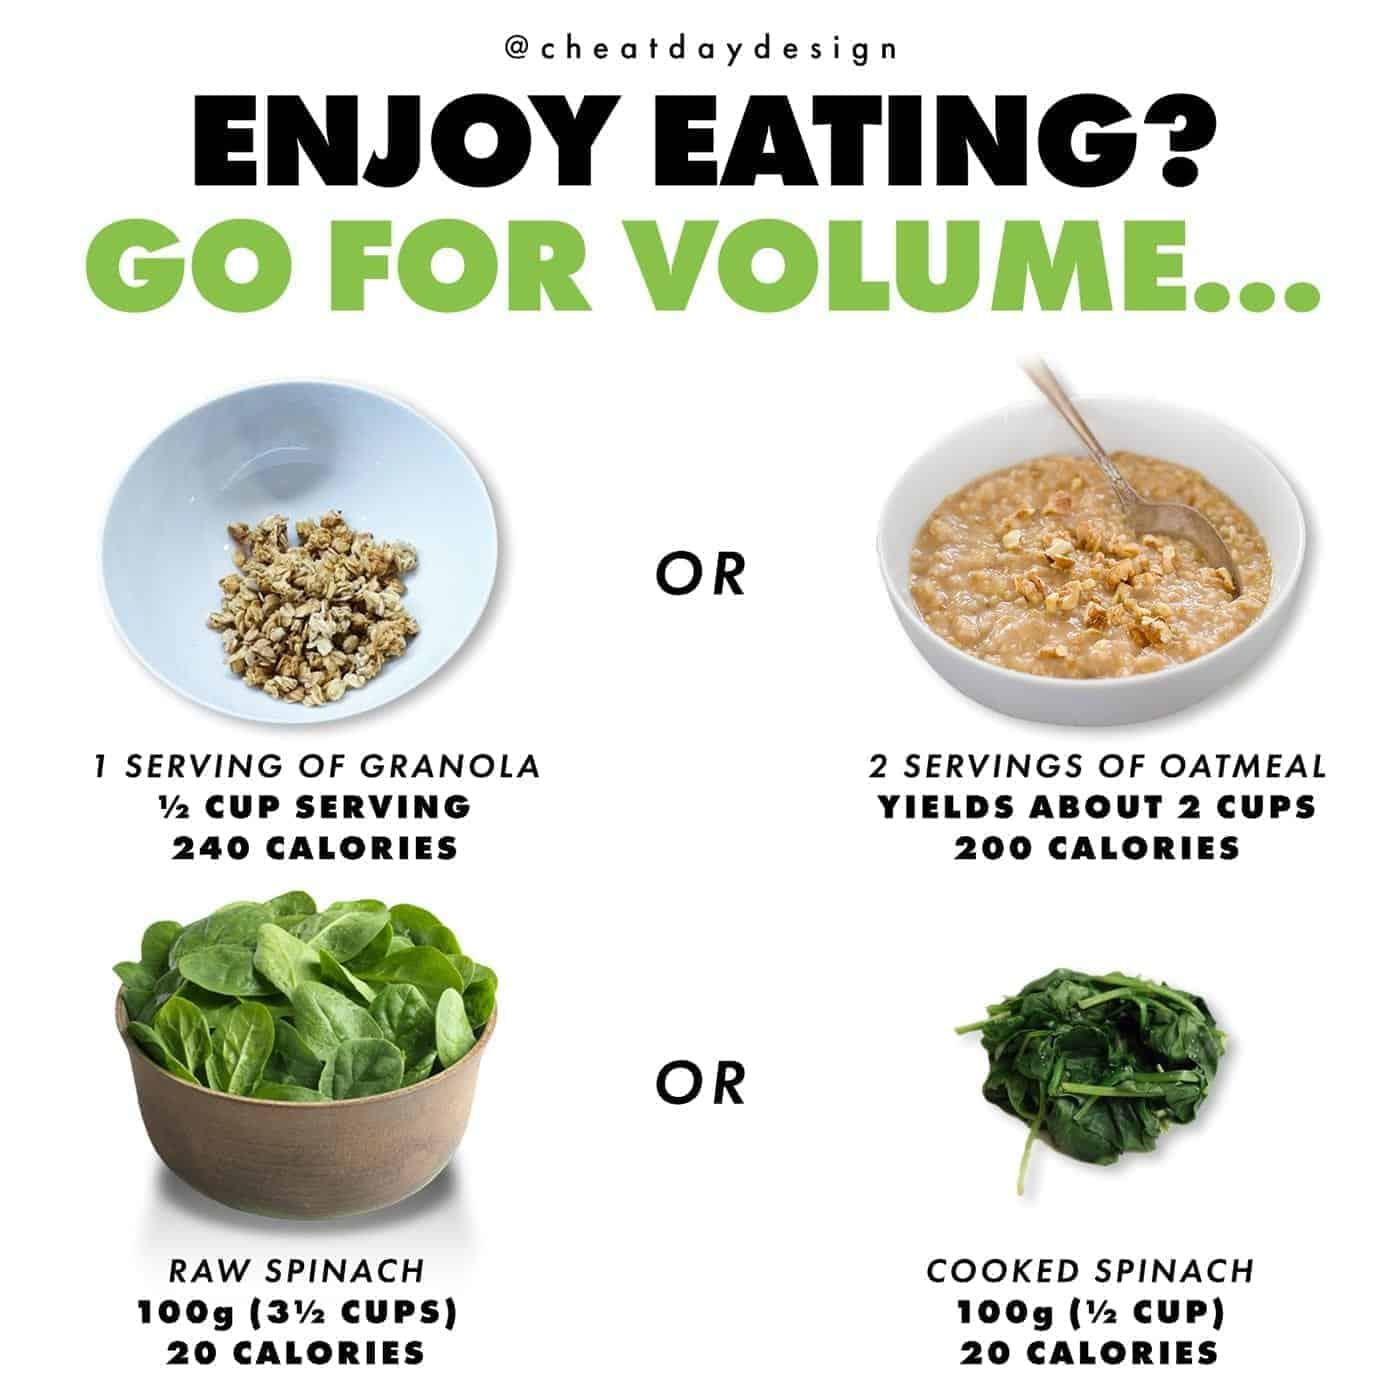 Benefits of volume eating